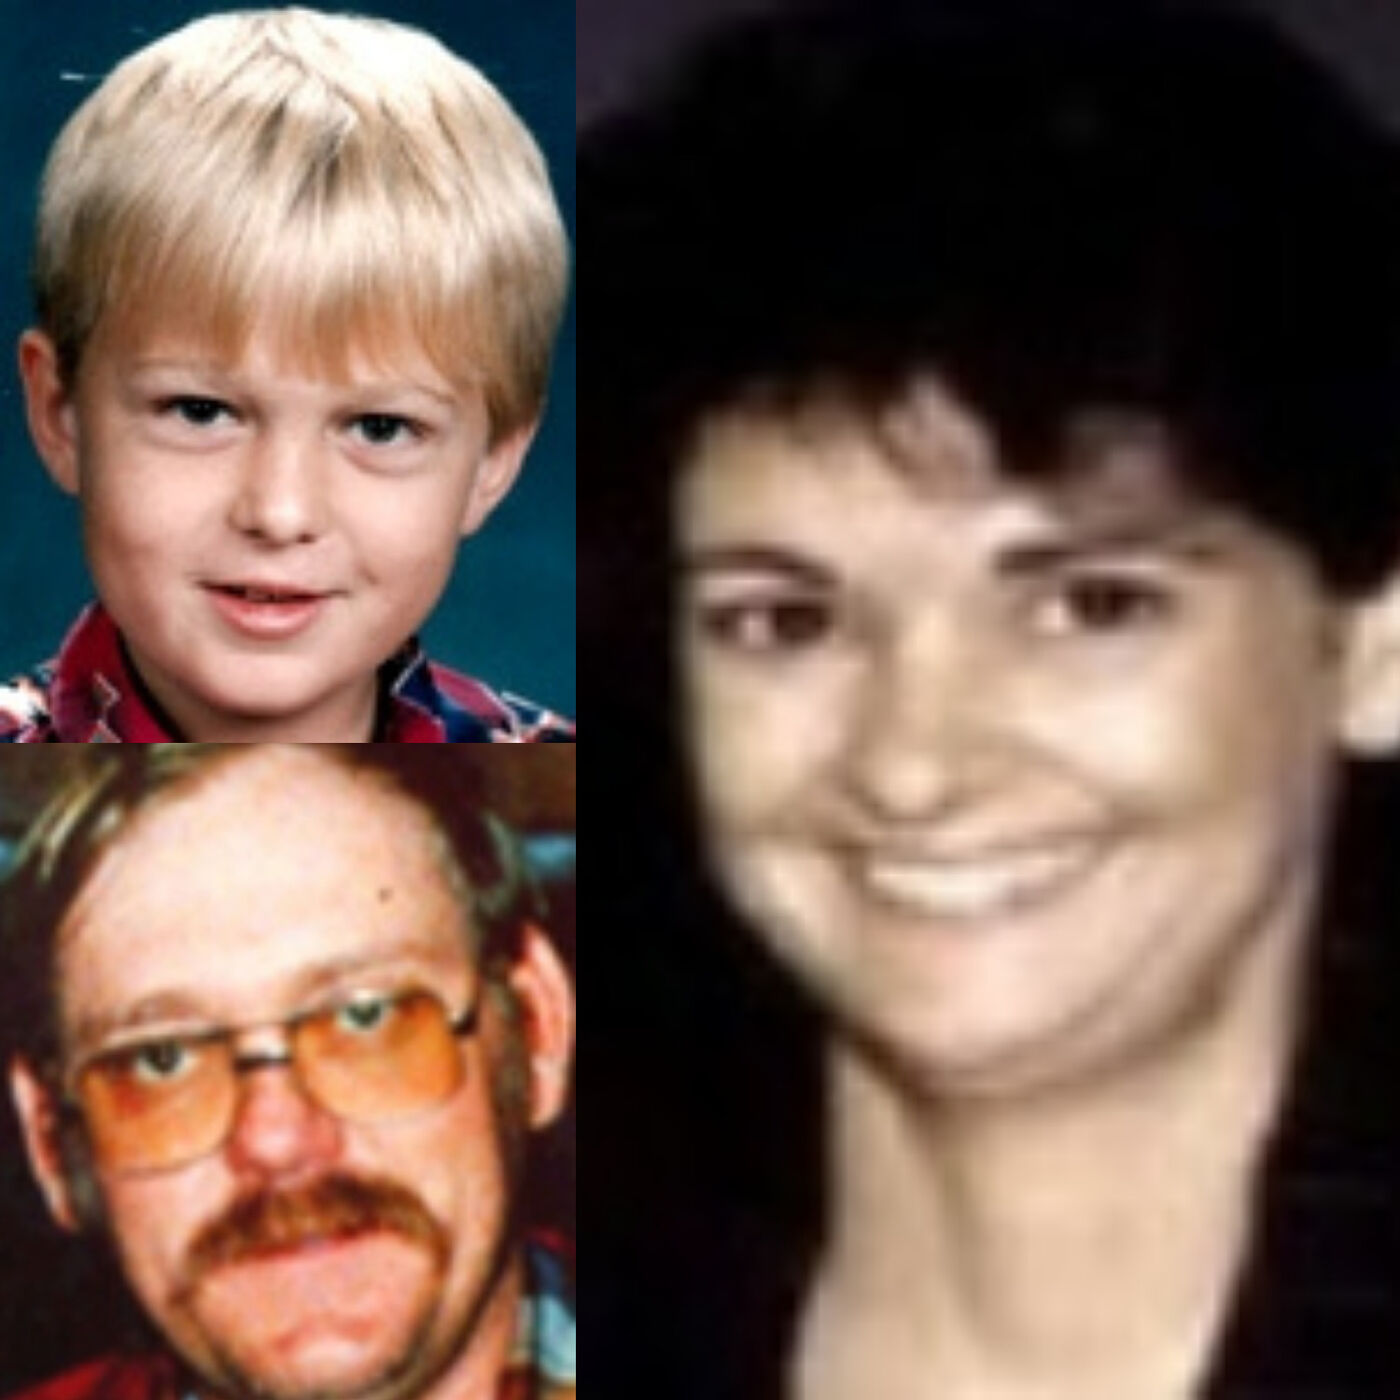 Episode 38: The Unsolved Murder of Latricia White & the Disapperance of Lee and Chance Wackerhagen